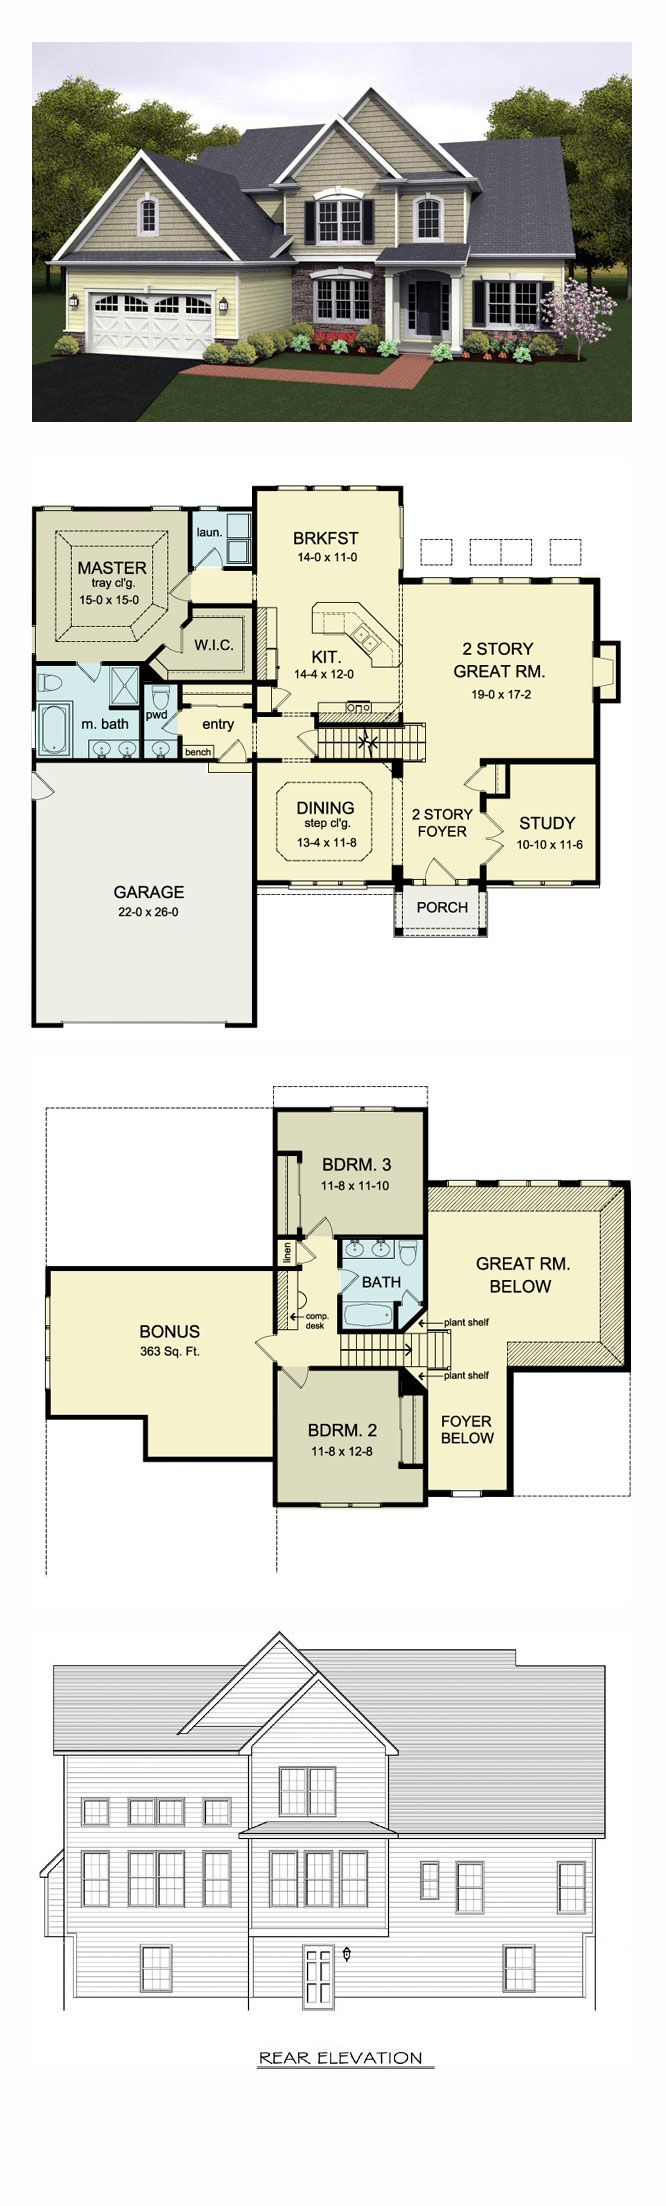 Best 25 house blueprints ideas on pinterest house floor plans house plans and 4 bedroom - Bedroom floor plans homes ...